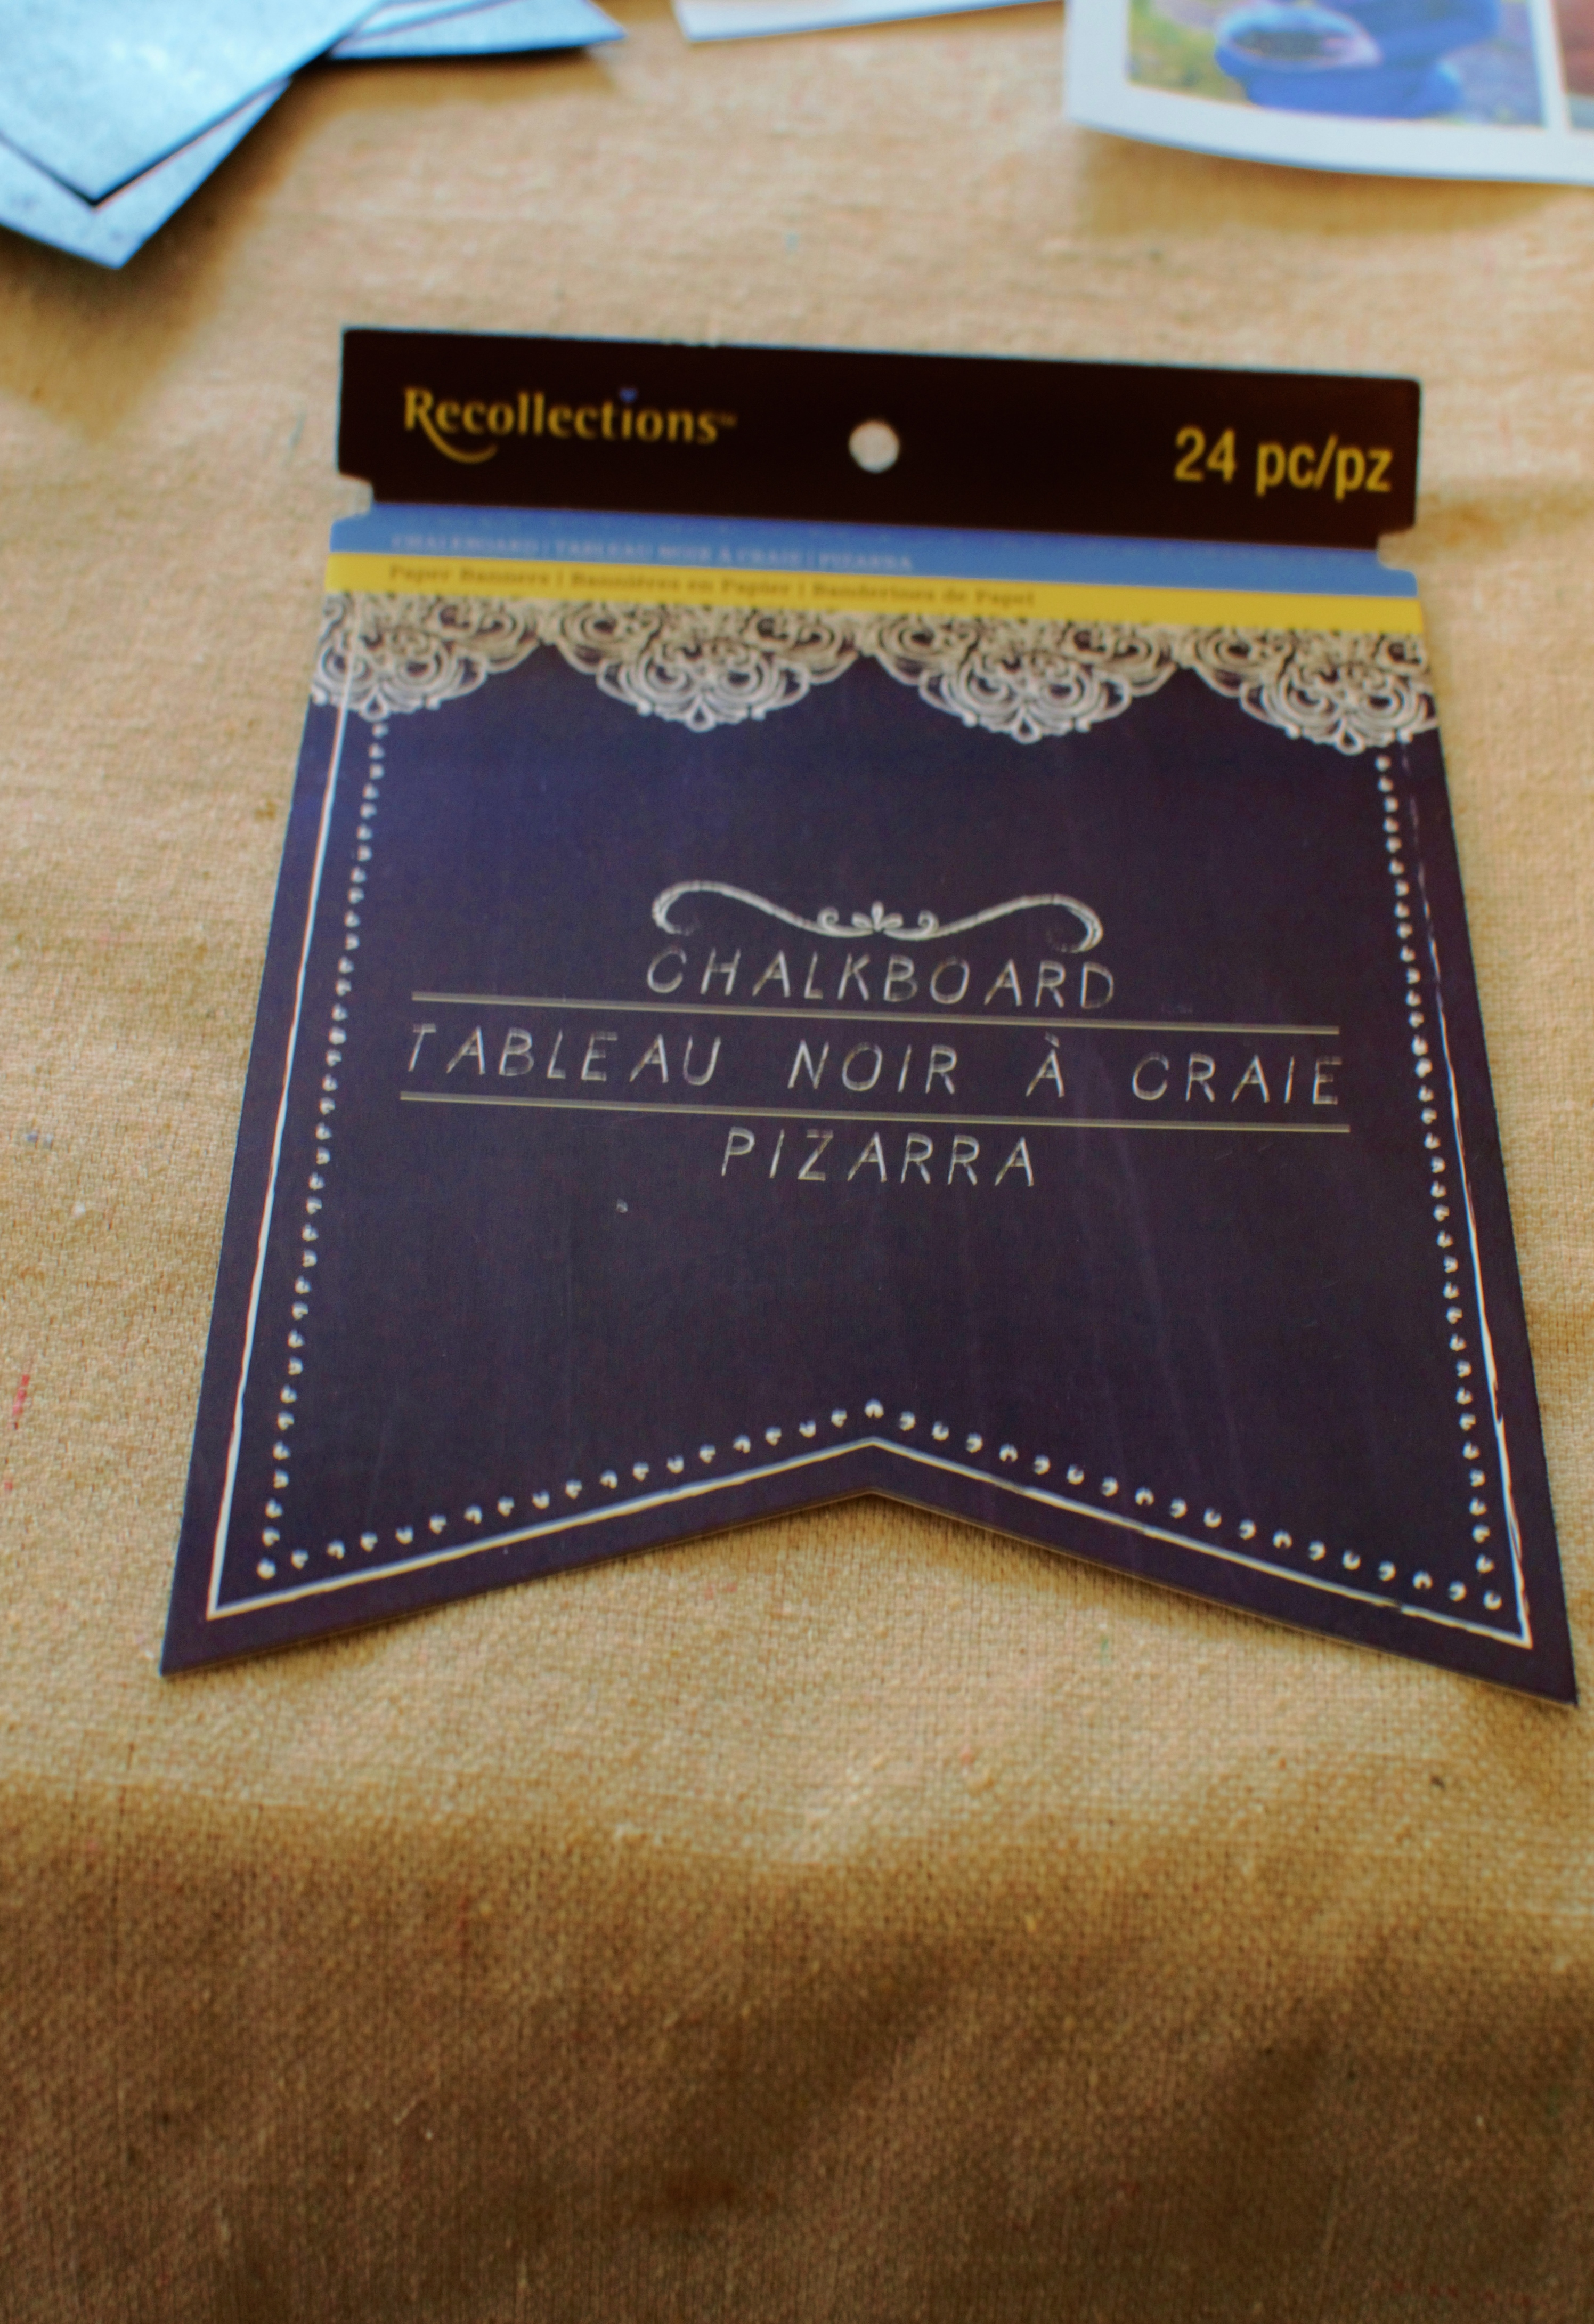 reusable photo album made with recollections brand chalkboard paper